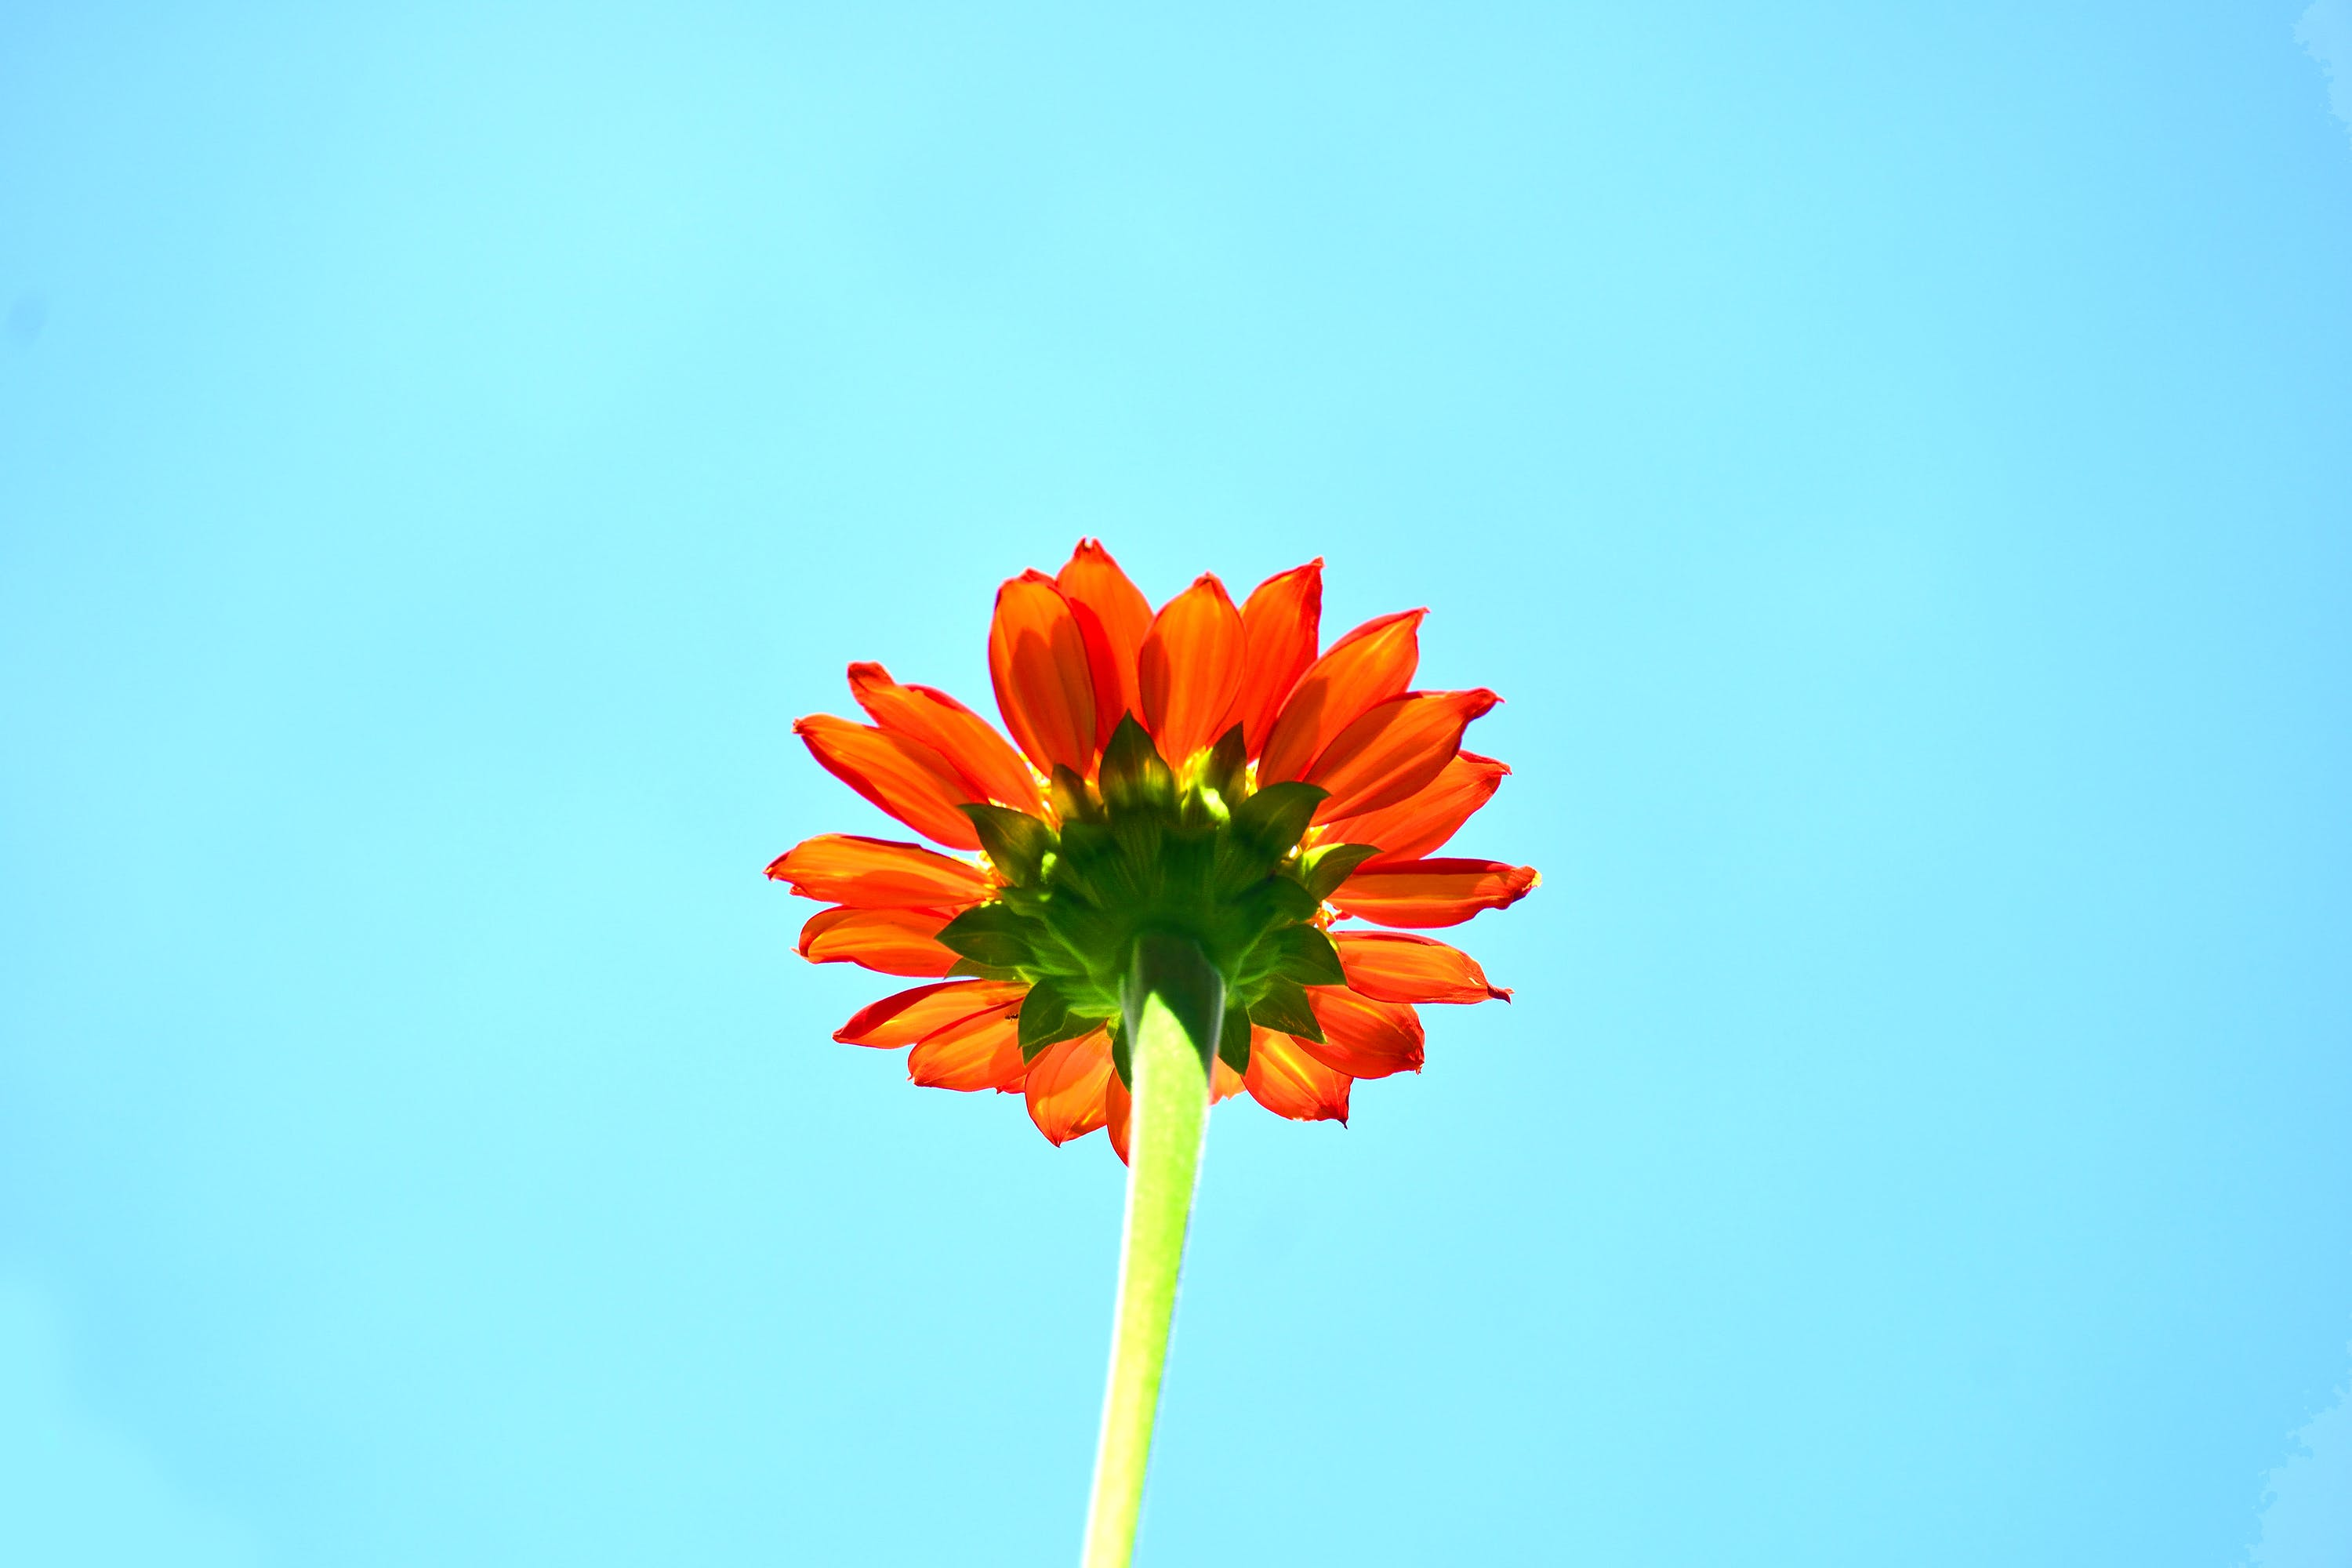 Orange Sunflower in Bloom Low-angle Photography